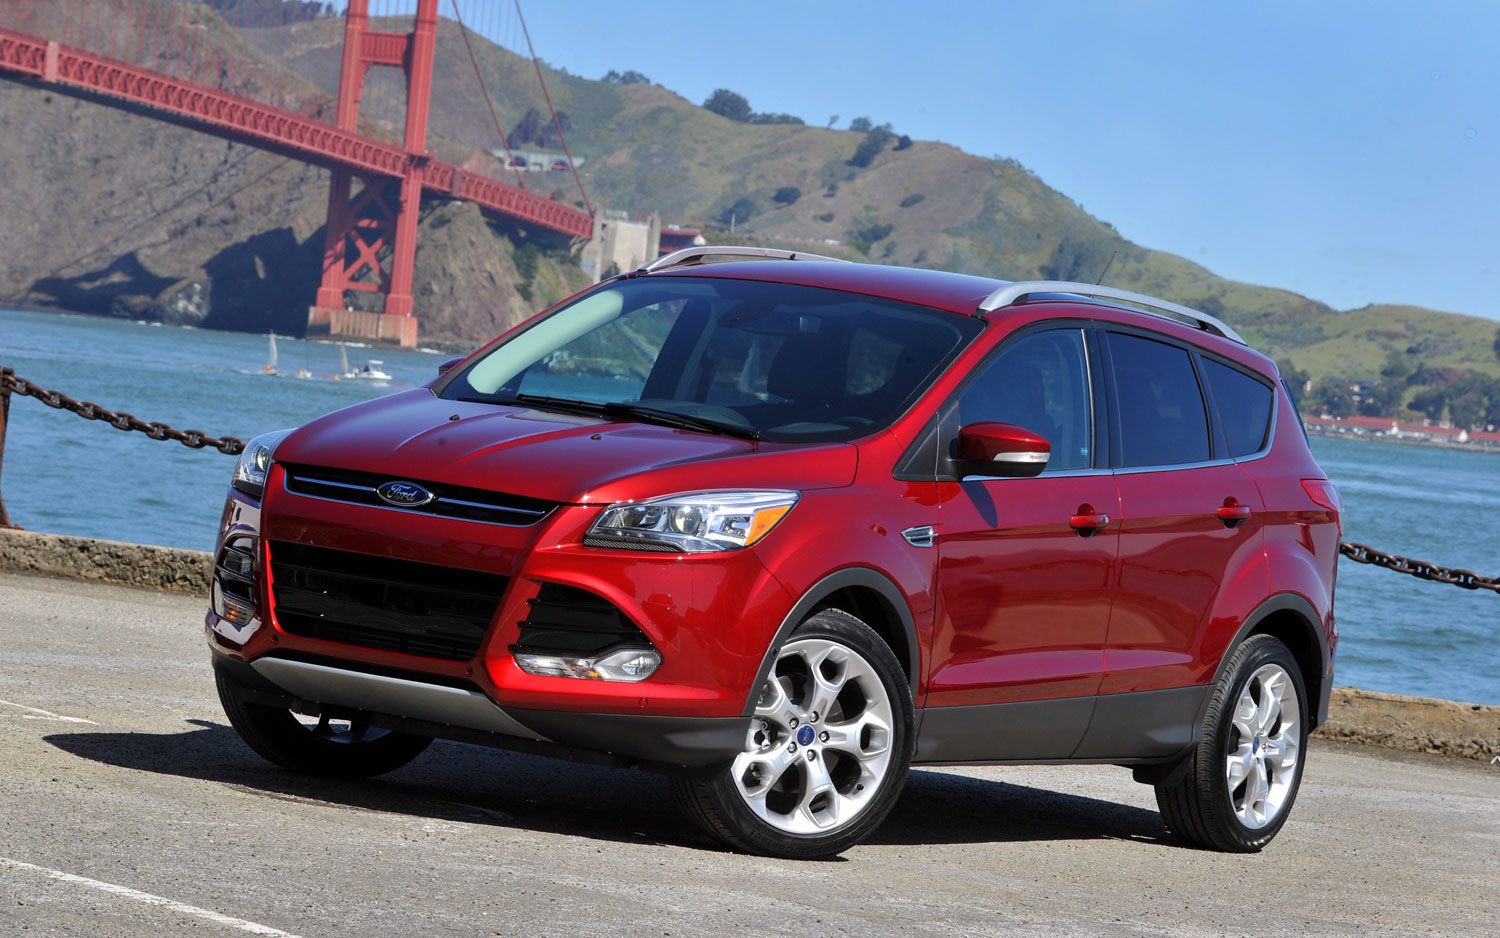 2013 Ford Escape Fron Three Quarter View Drivers Side1